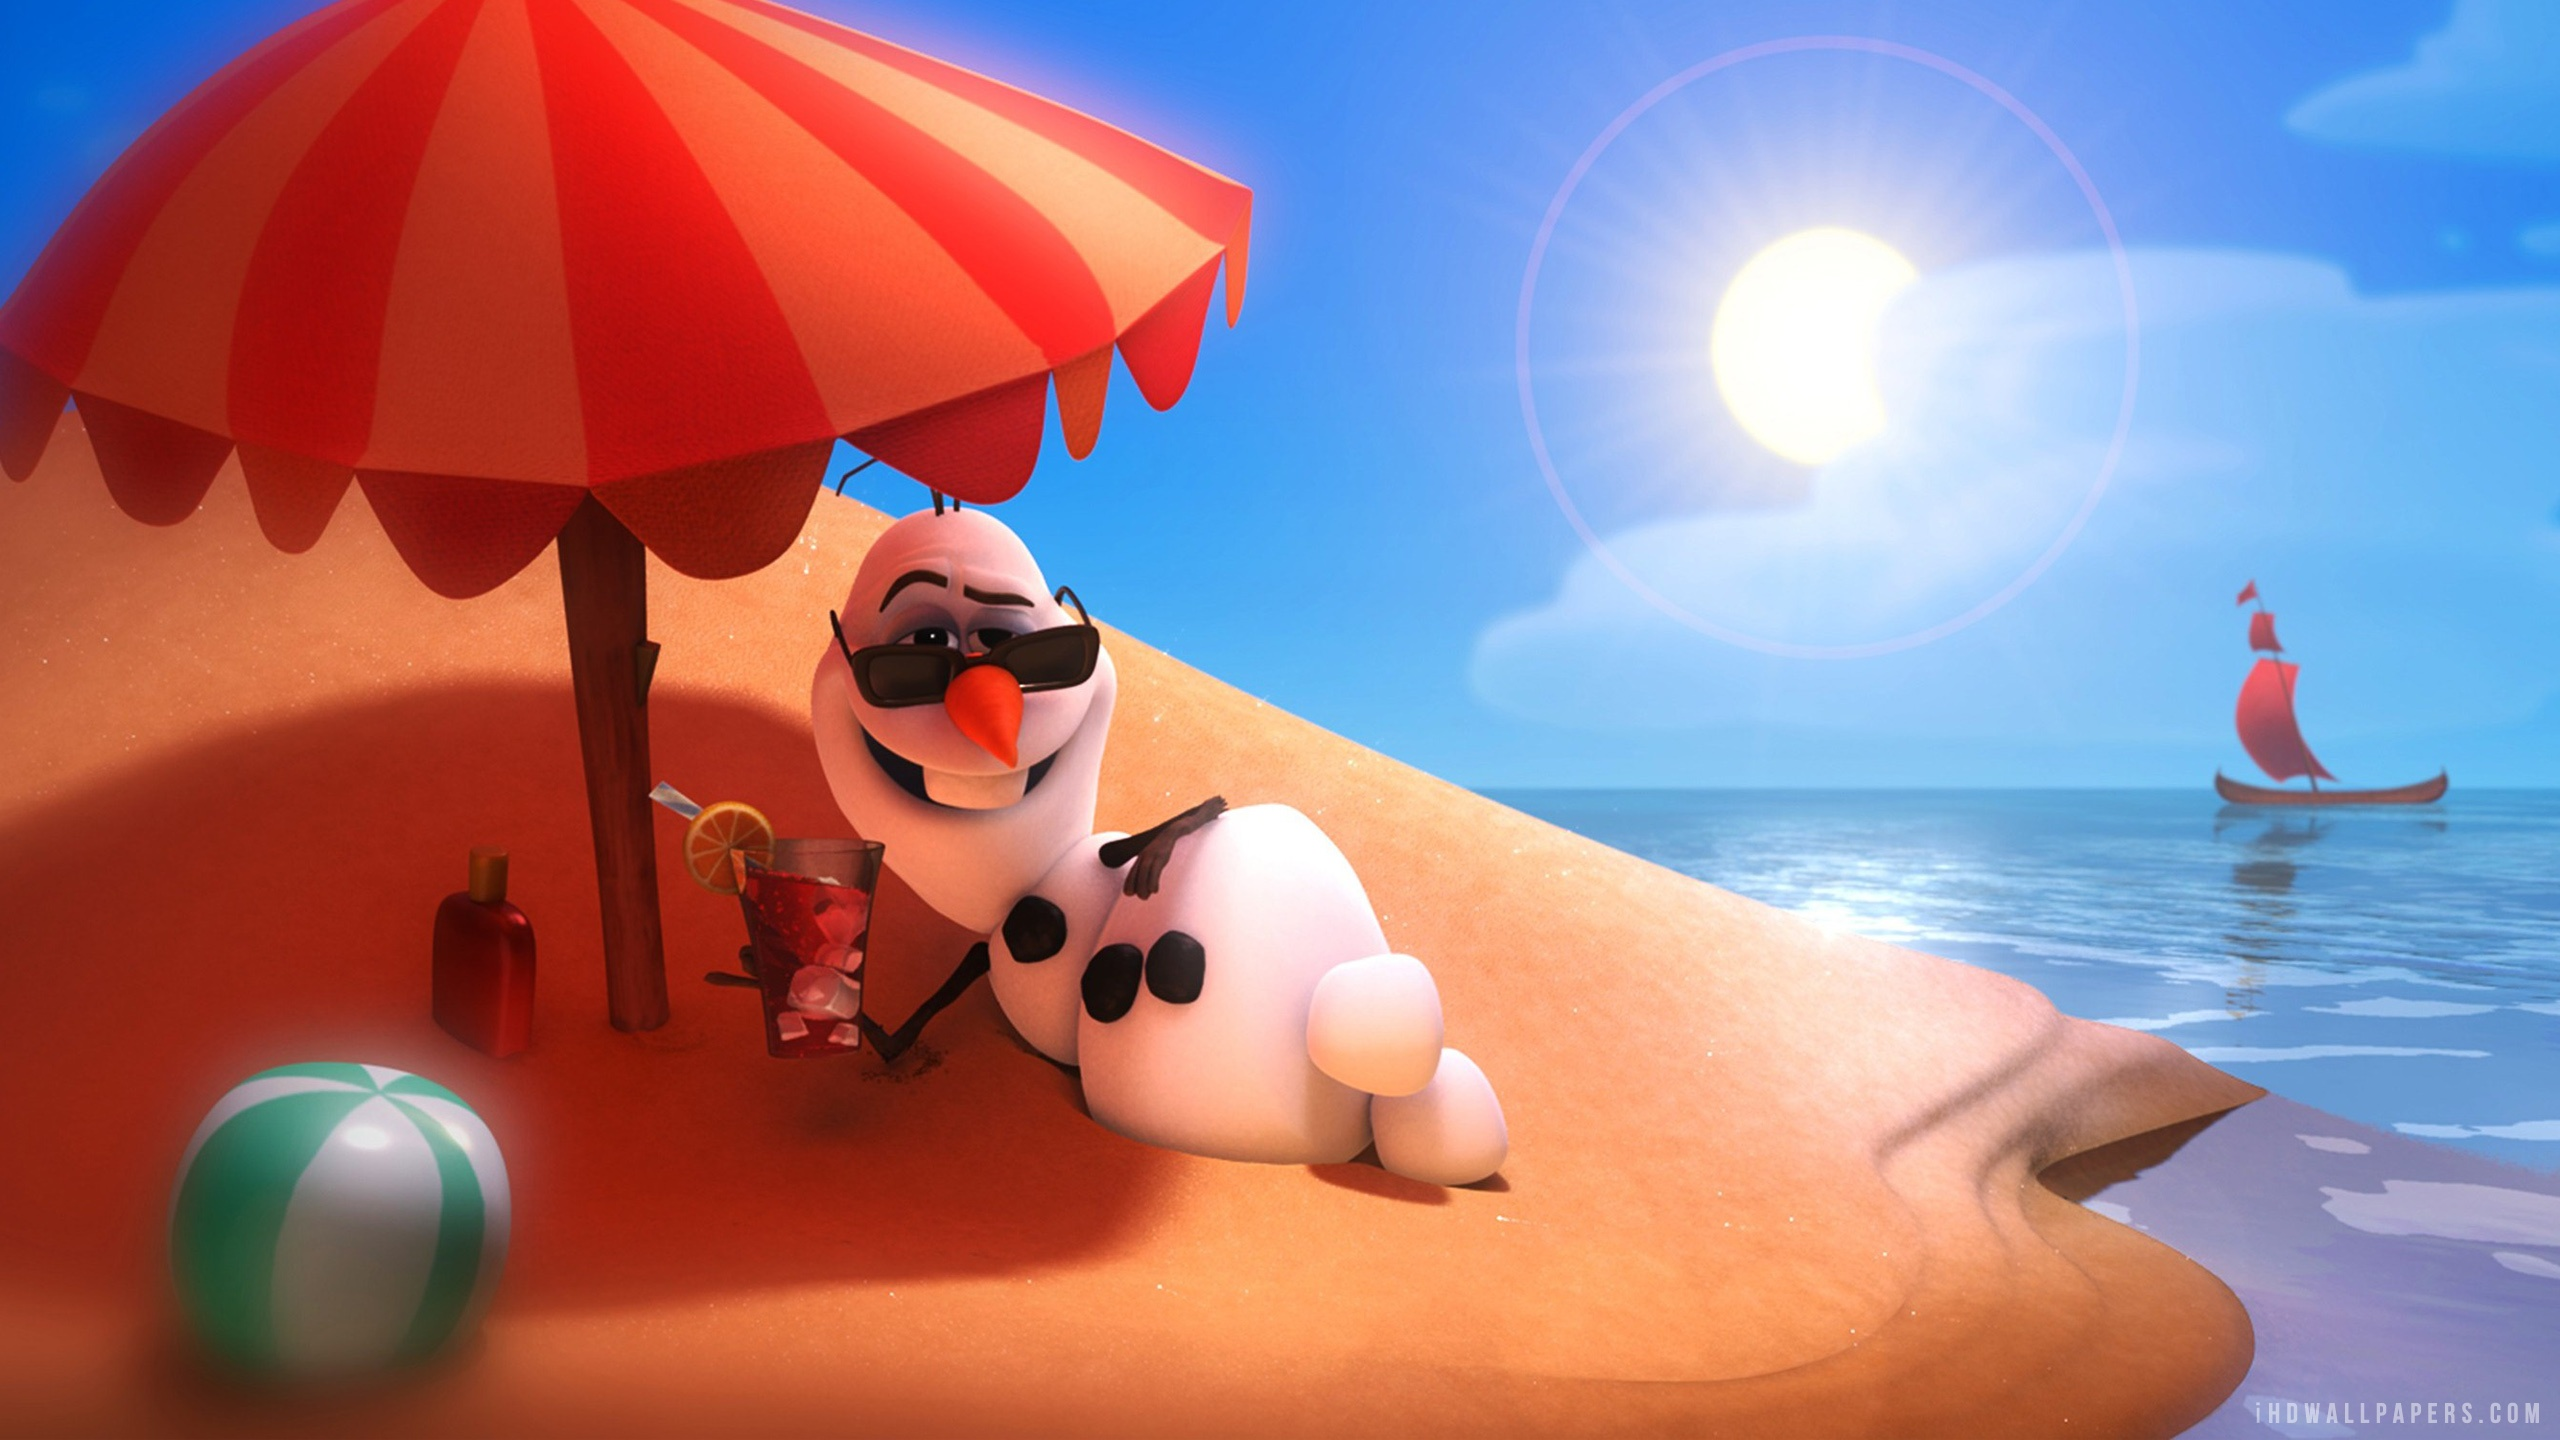 Disney Frozen Olaf HD Wallpaper   iHD Wallpapers 2560x1440